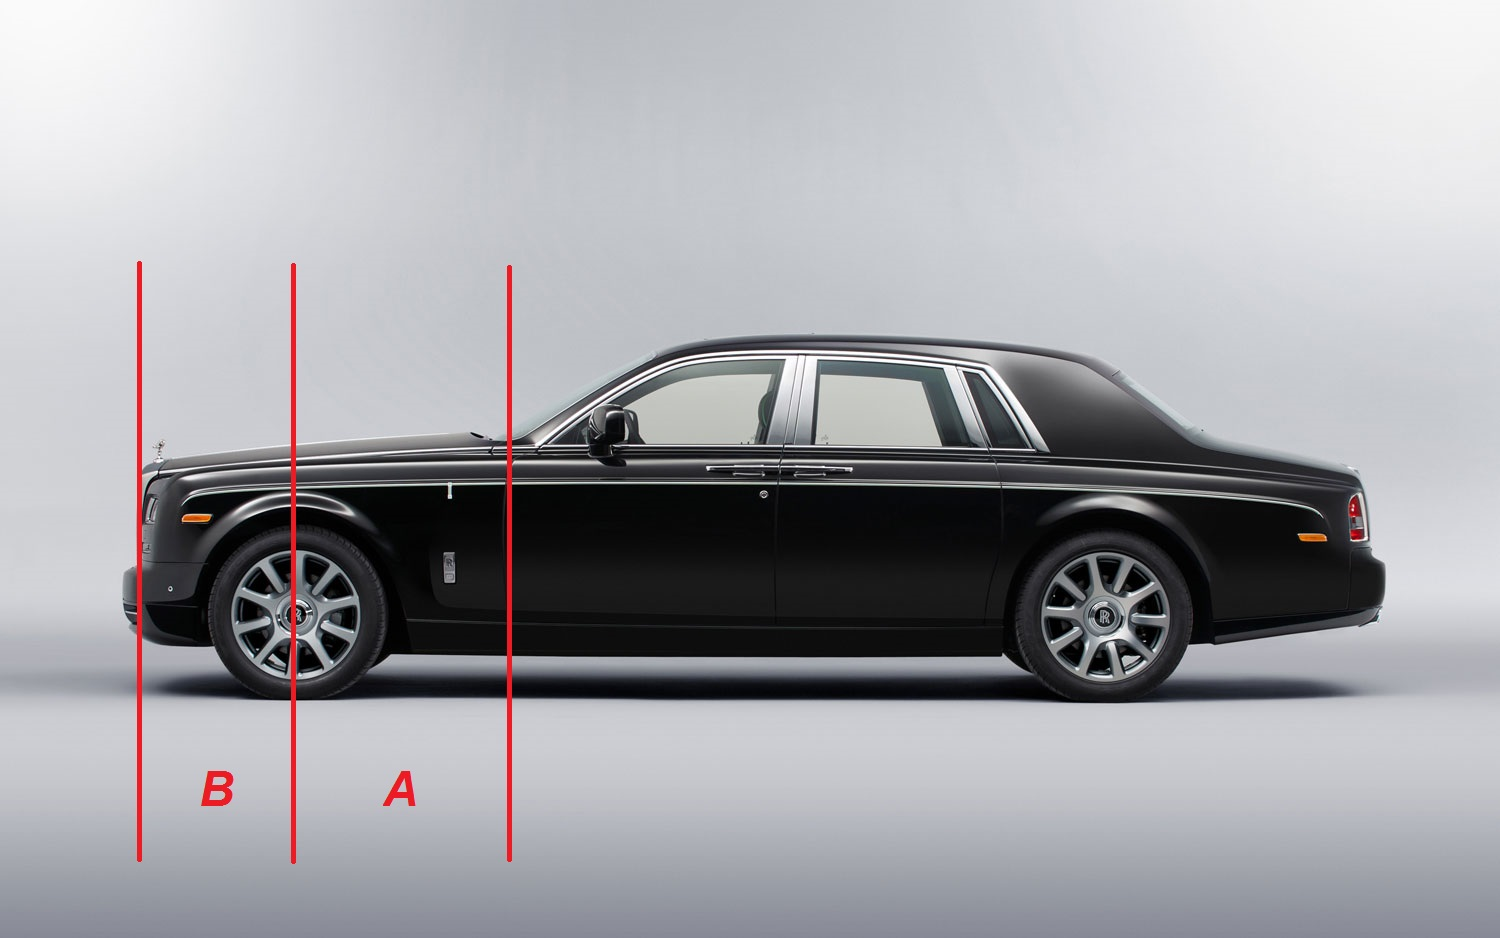 Rolls-Royce_Phantom_Side_Profile_Illustration